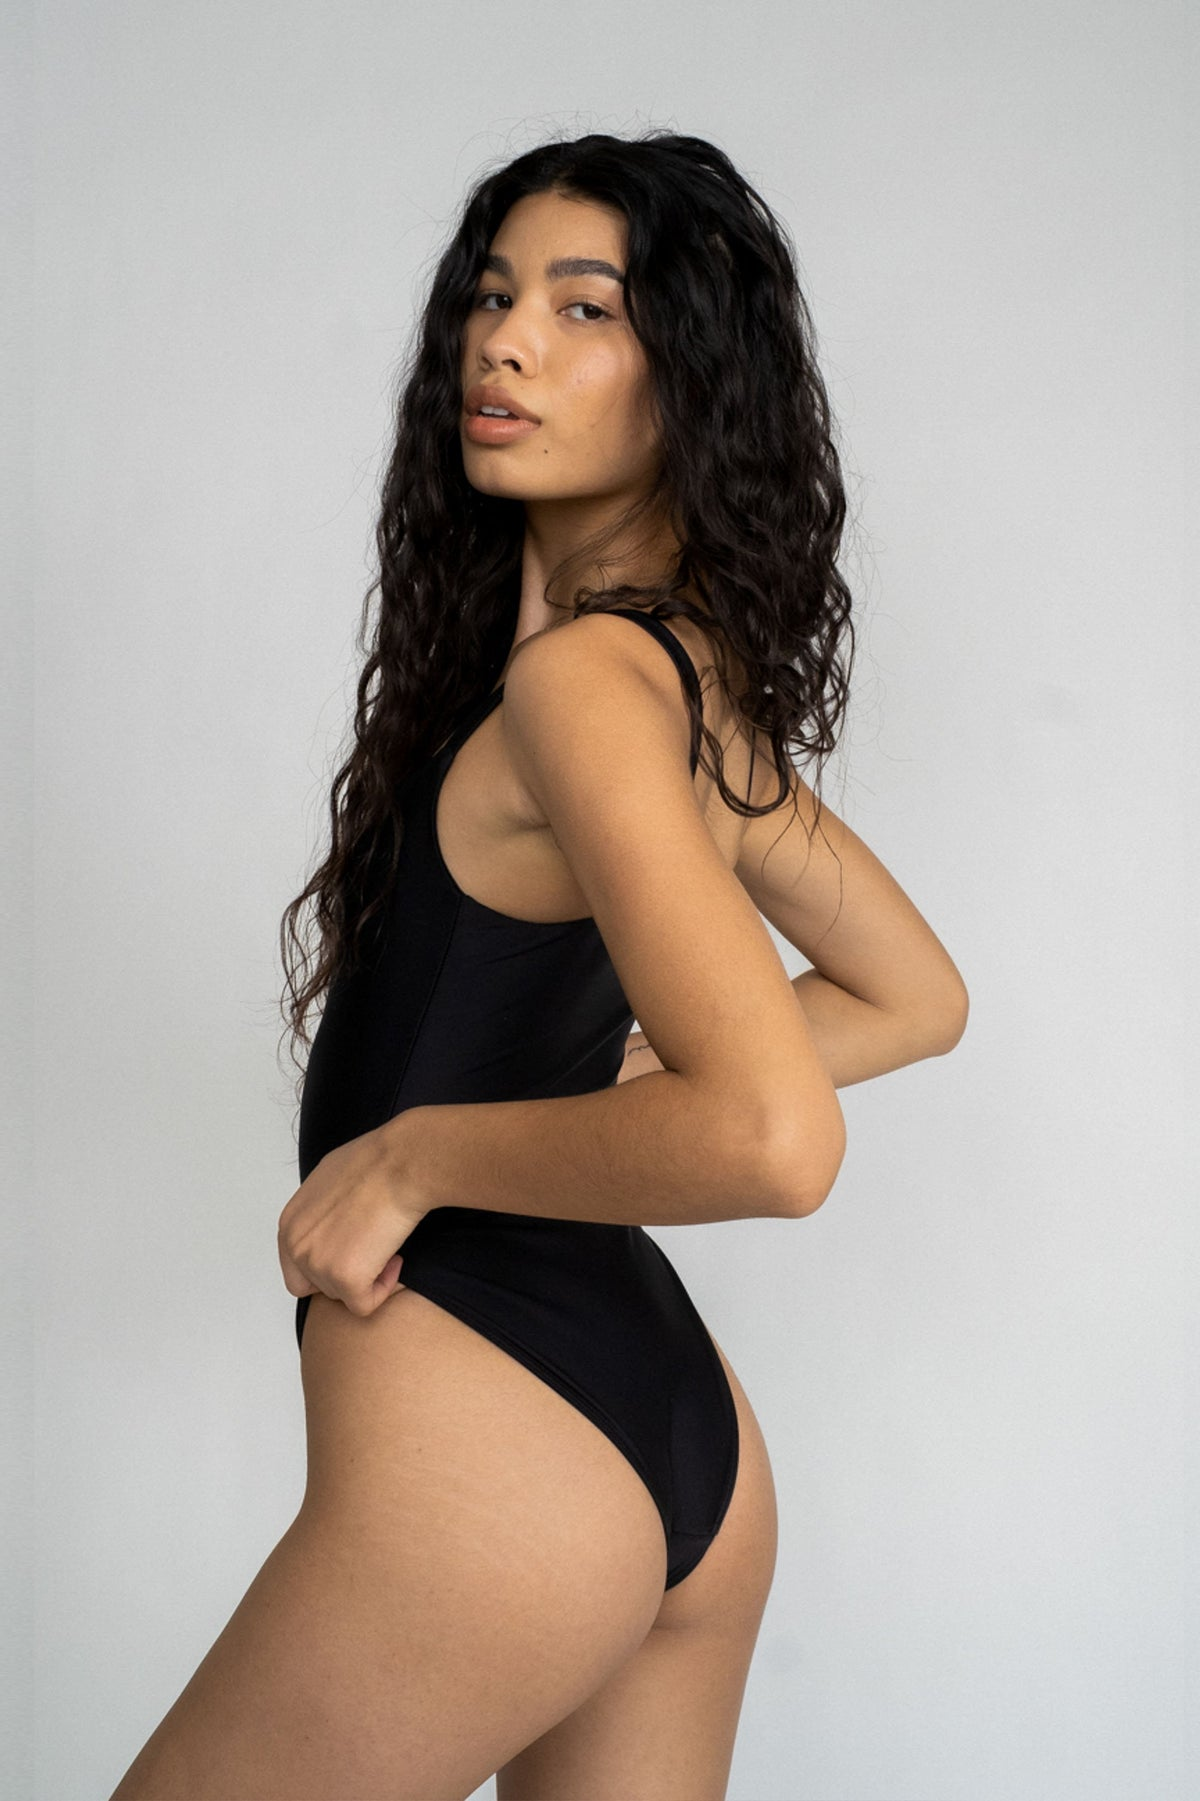 The back of a woman looking over her shoulder wearing a black one piece swimsuit with a straight neckline.